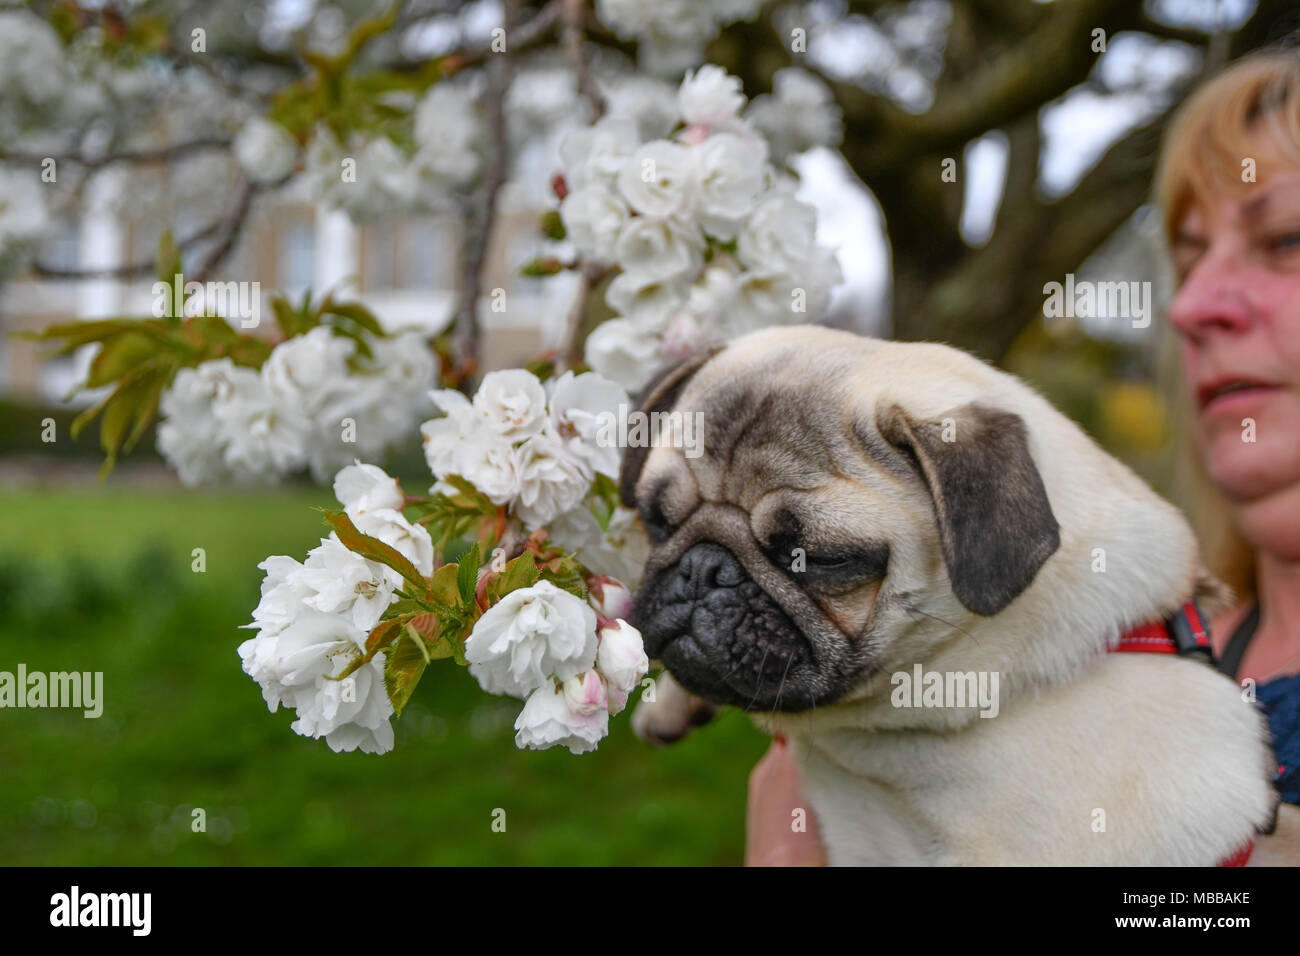 Close up of Pug Puppy in front of tree blossom flowers - Stock Image